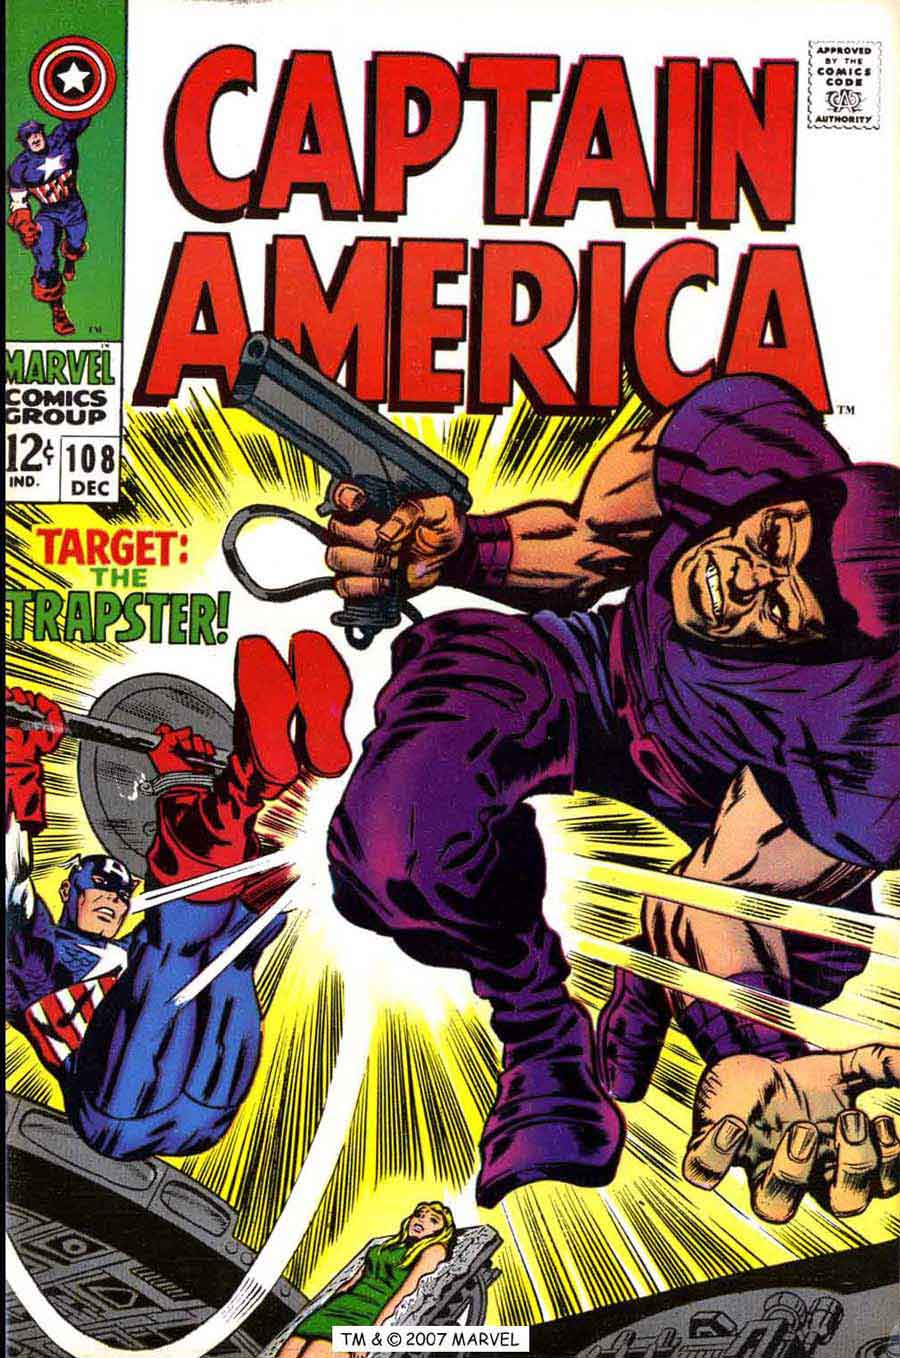 Captain America v1 #108 marvel comic book cover art by Jack Kirby